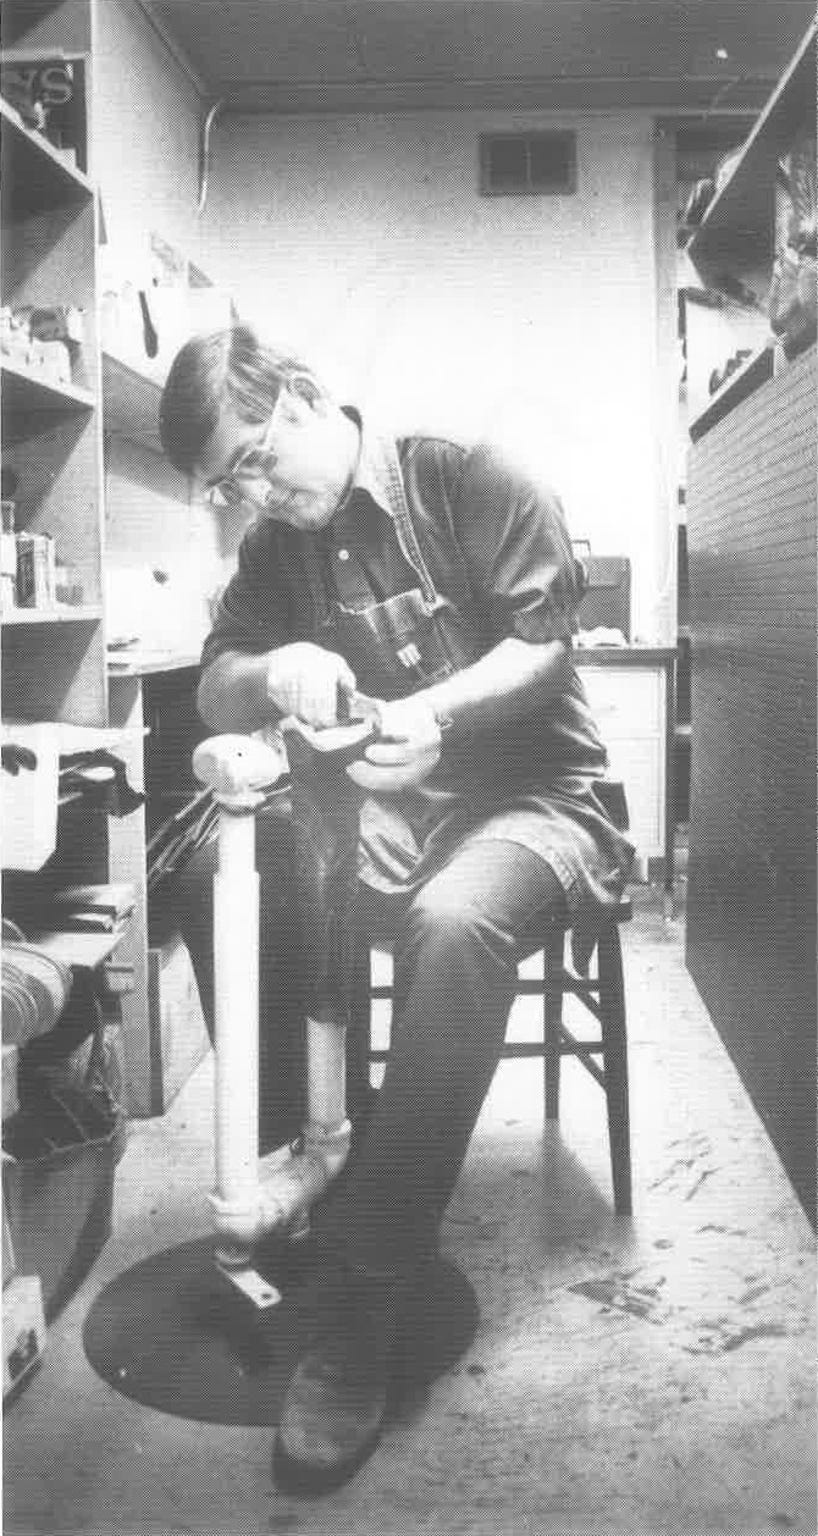 Dennis Siller working at Siller's Boot and Shoe Repair in Great Falls on August, 17, 1981